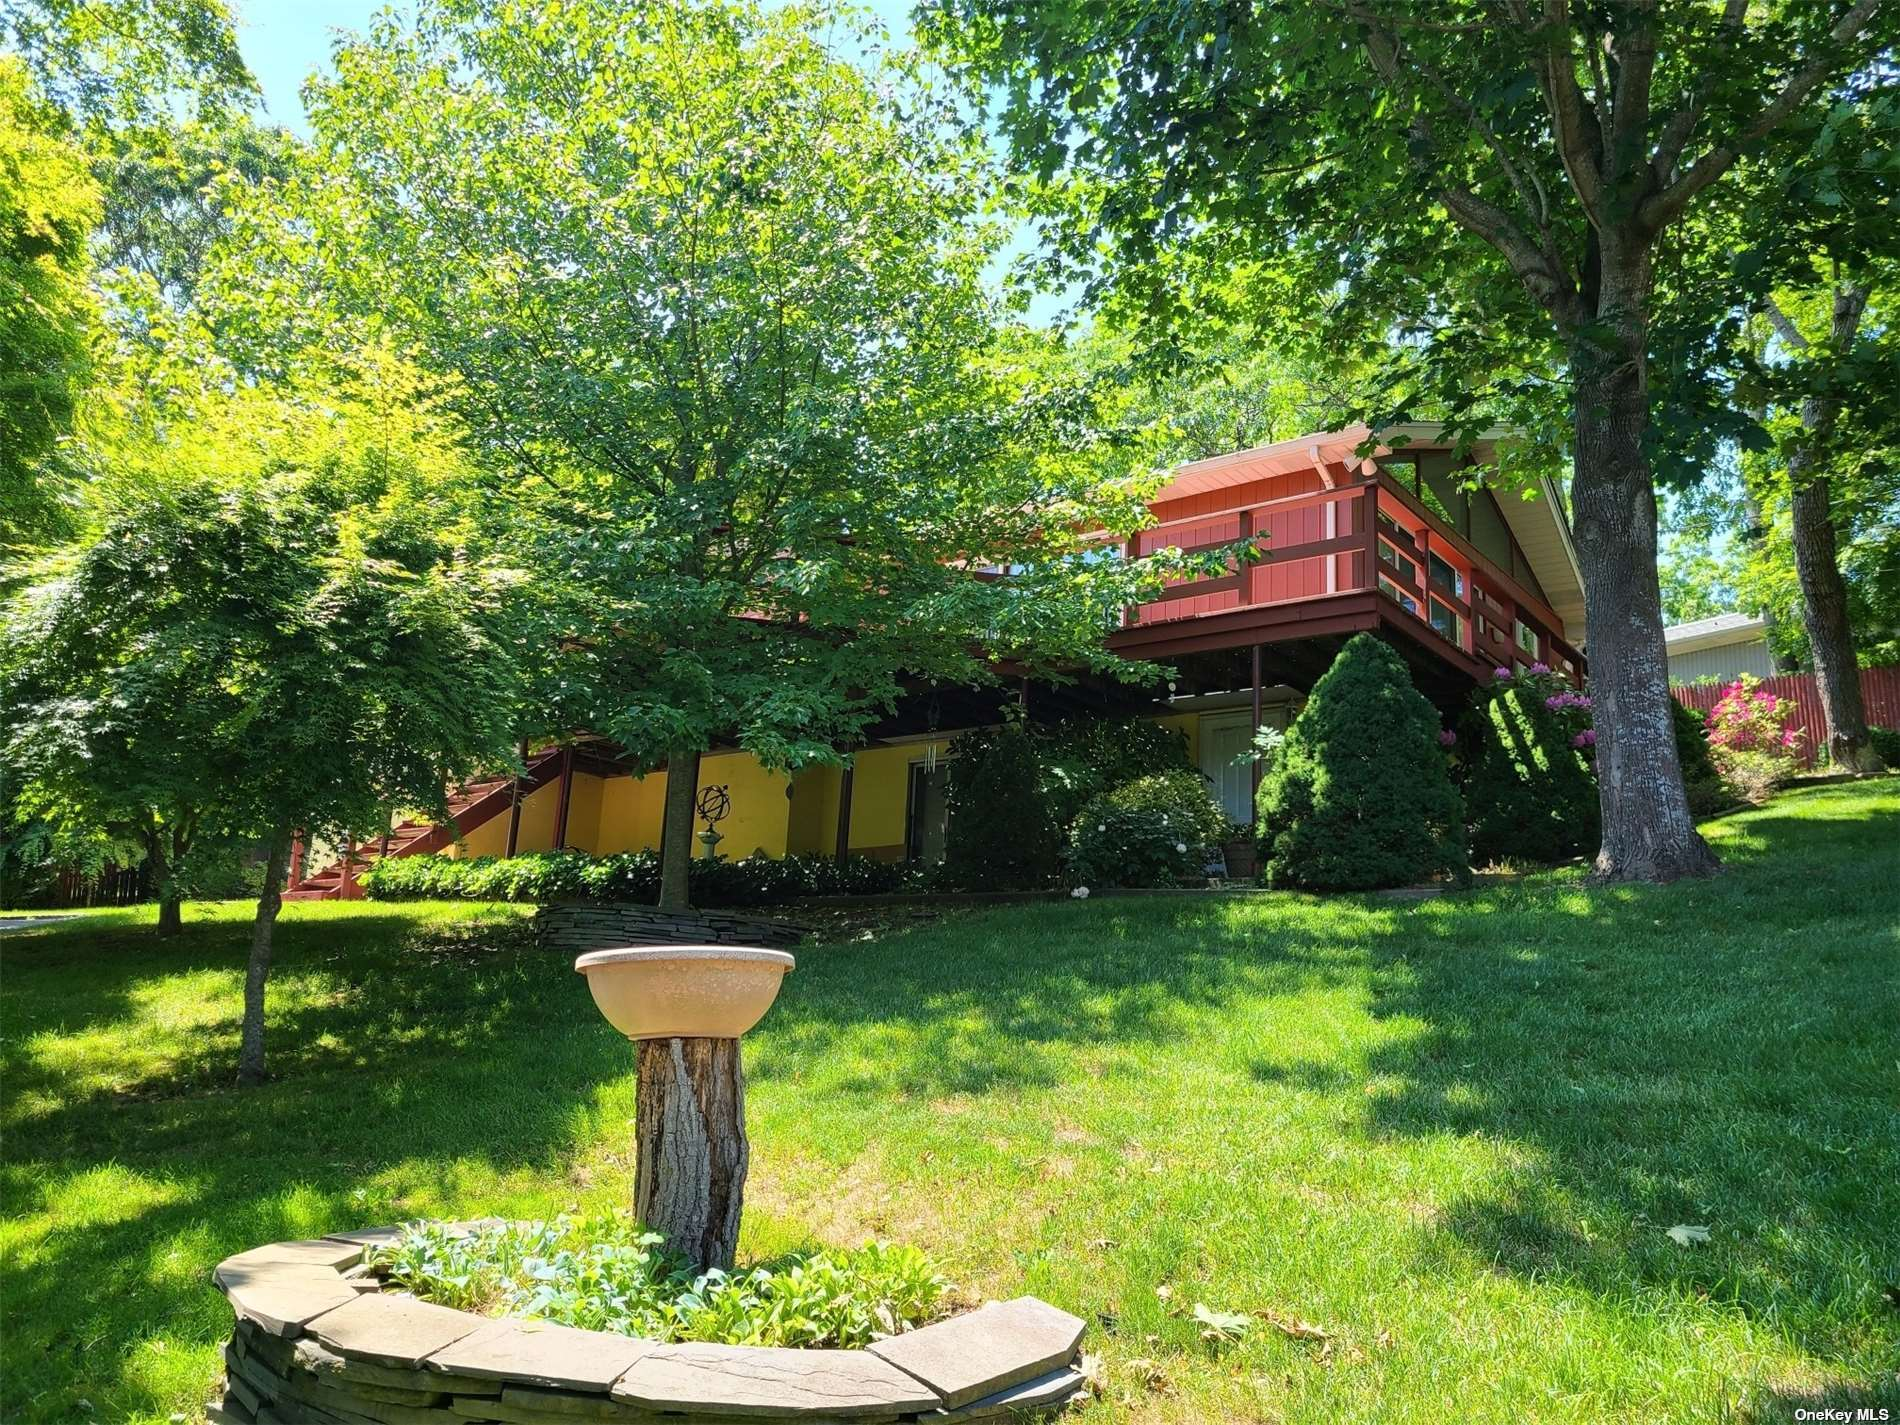 Wonderful Opportunity to Buy a Year-Round Residence or Gateway to the Hamptons Vacation Home Centrally Located in the Heart of Hampton Bays Just Minutes Away from the Shinnecock Canal, Shinnecock Marina, Waterfront Restaurants and Newly Restored Canoe Place Inn, the Oldest Inn in America! 1st Time on the Market! Raised Ranch with 1,367 SF Features Great Room Lay-out with Cathedral Ceiling, Living Room with Fireplace, Dining Room, and Kitchen Surrounded by Sliding Doors. Master Bedroom with Master Bath, 2 More Bedrooms & Full Bath. Lower Level has Full Finished Basement with Ground Level Entrance with Family Room, Summer Kitchen, Office, Walk-In-Closet, 3rd Full Bath & Entry From Garage. Beautiful Setting on .27 Acres with Decks Around House, Oil Hot Air Heat, Central Air Conditioning, Inground Sprinklers, Architectural Roof & Low Taxes of $6,827.